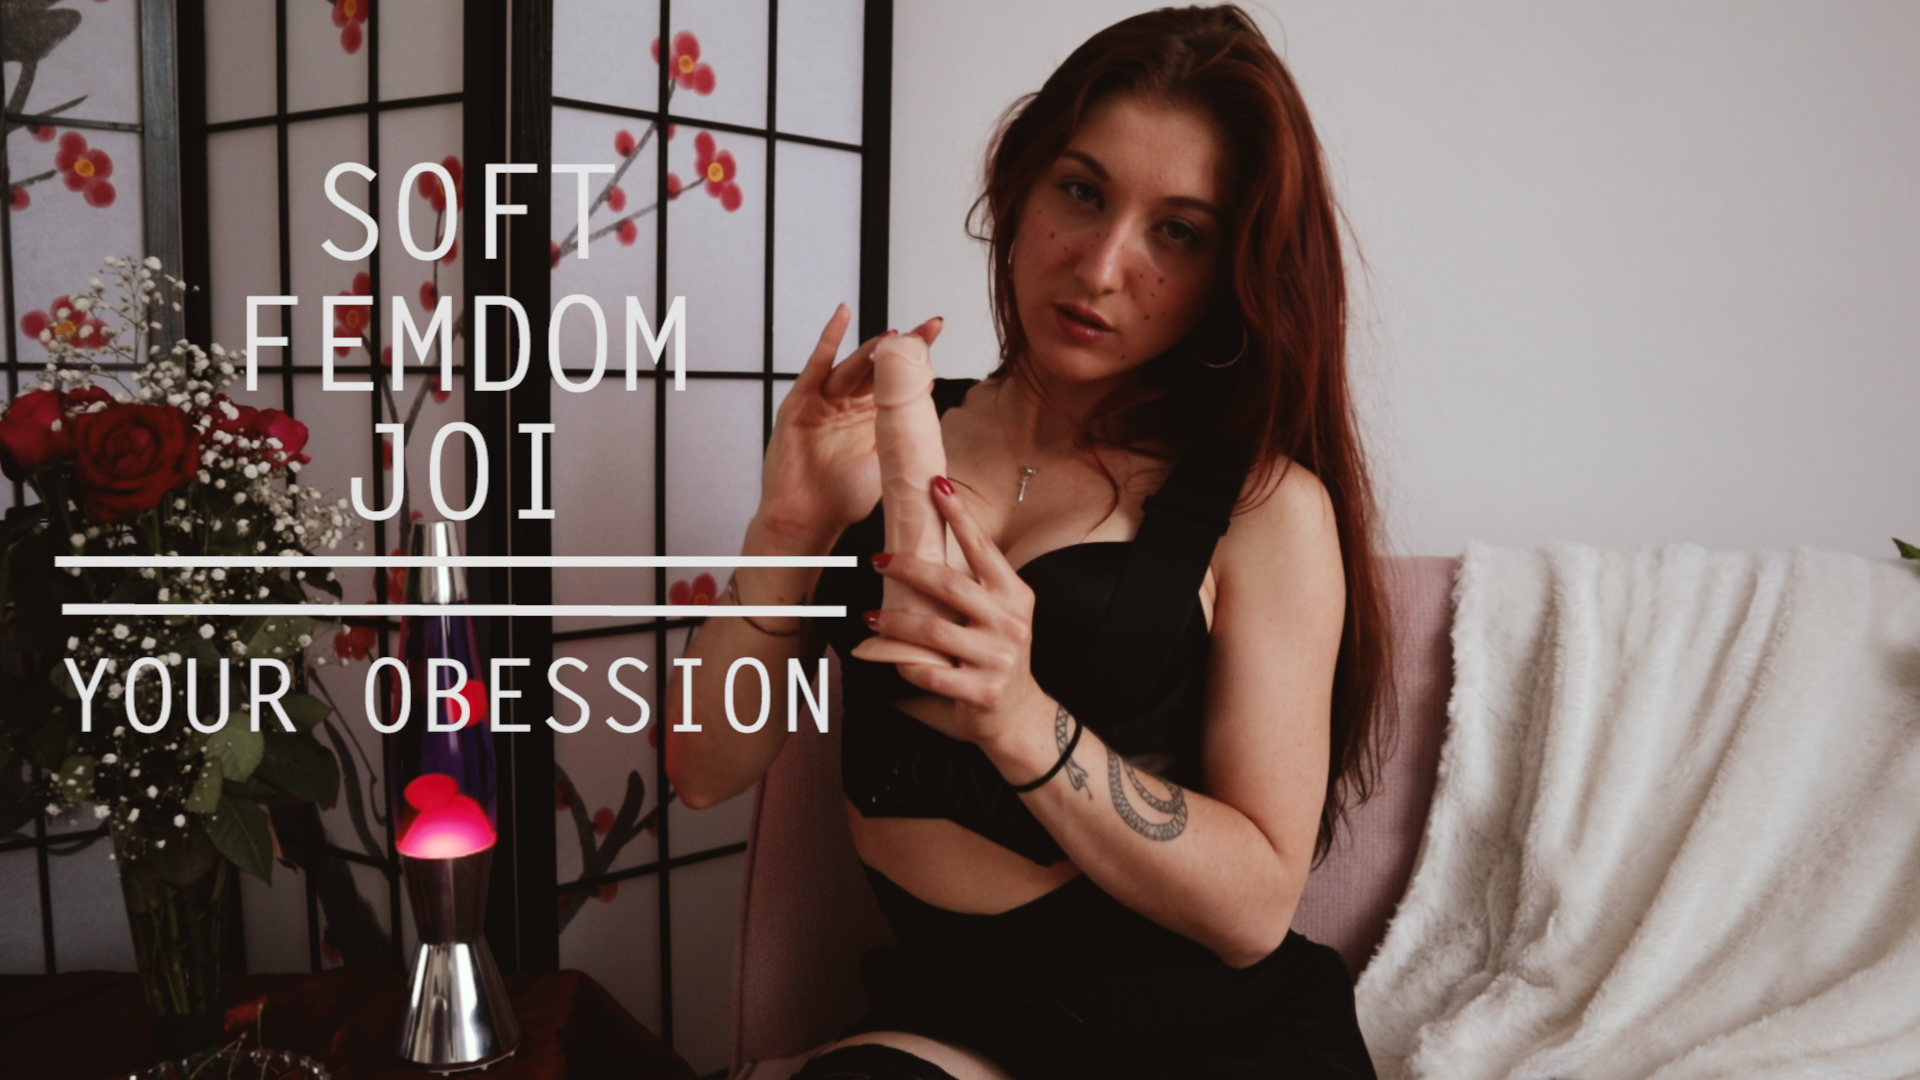 SOFTDOM EDGING JOI - Your Obsession.